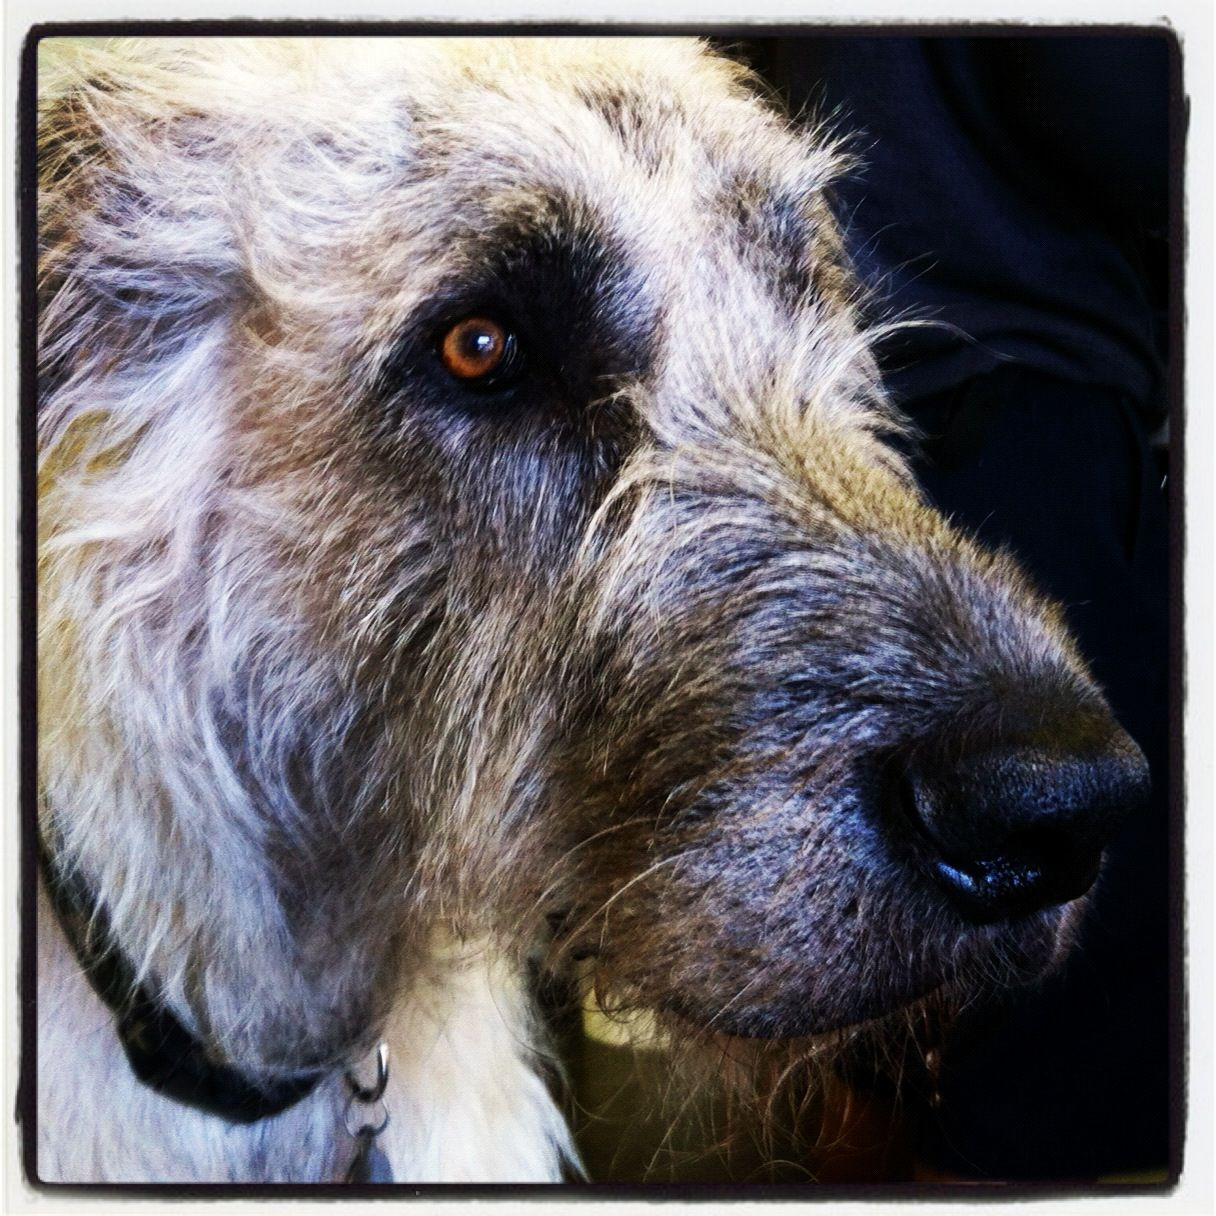 Wolfhound puppies going through beaver training irish wolfhound puppies going through beaver training irish wolfhounds pinterest wolfhound wolfhound puppies and irish wolfhounds geenschuldenfo Image collections